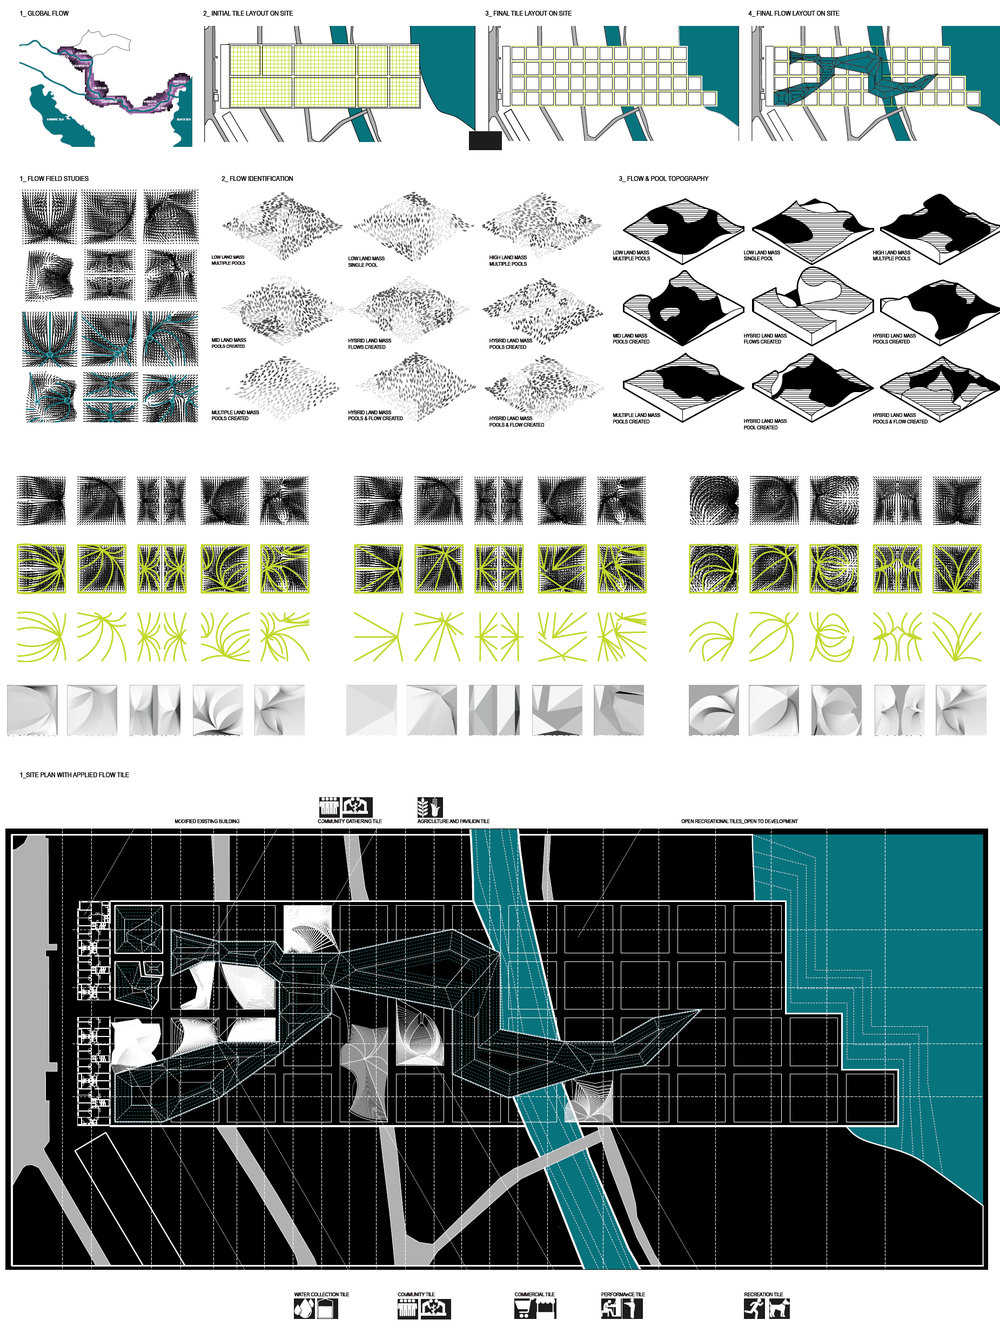 EPIFLOW: Towards Resiliency of Post-Soviet City Networks (S15) | Kimberly McDonald (B.Arch 2015)